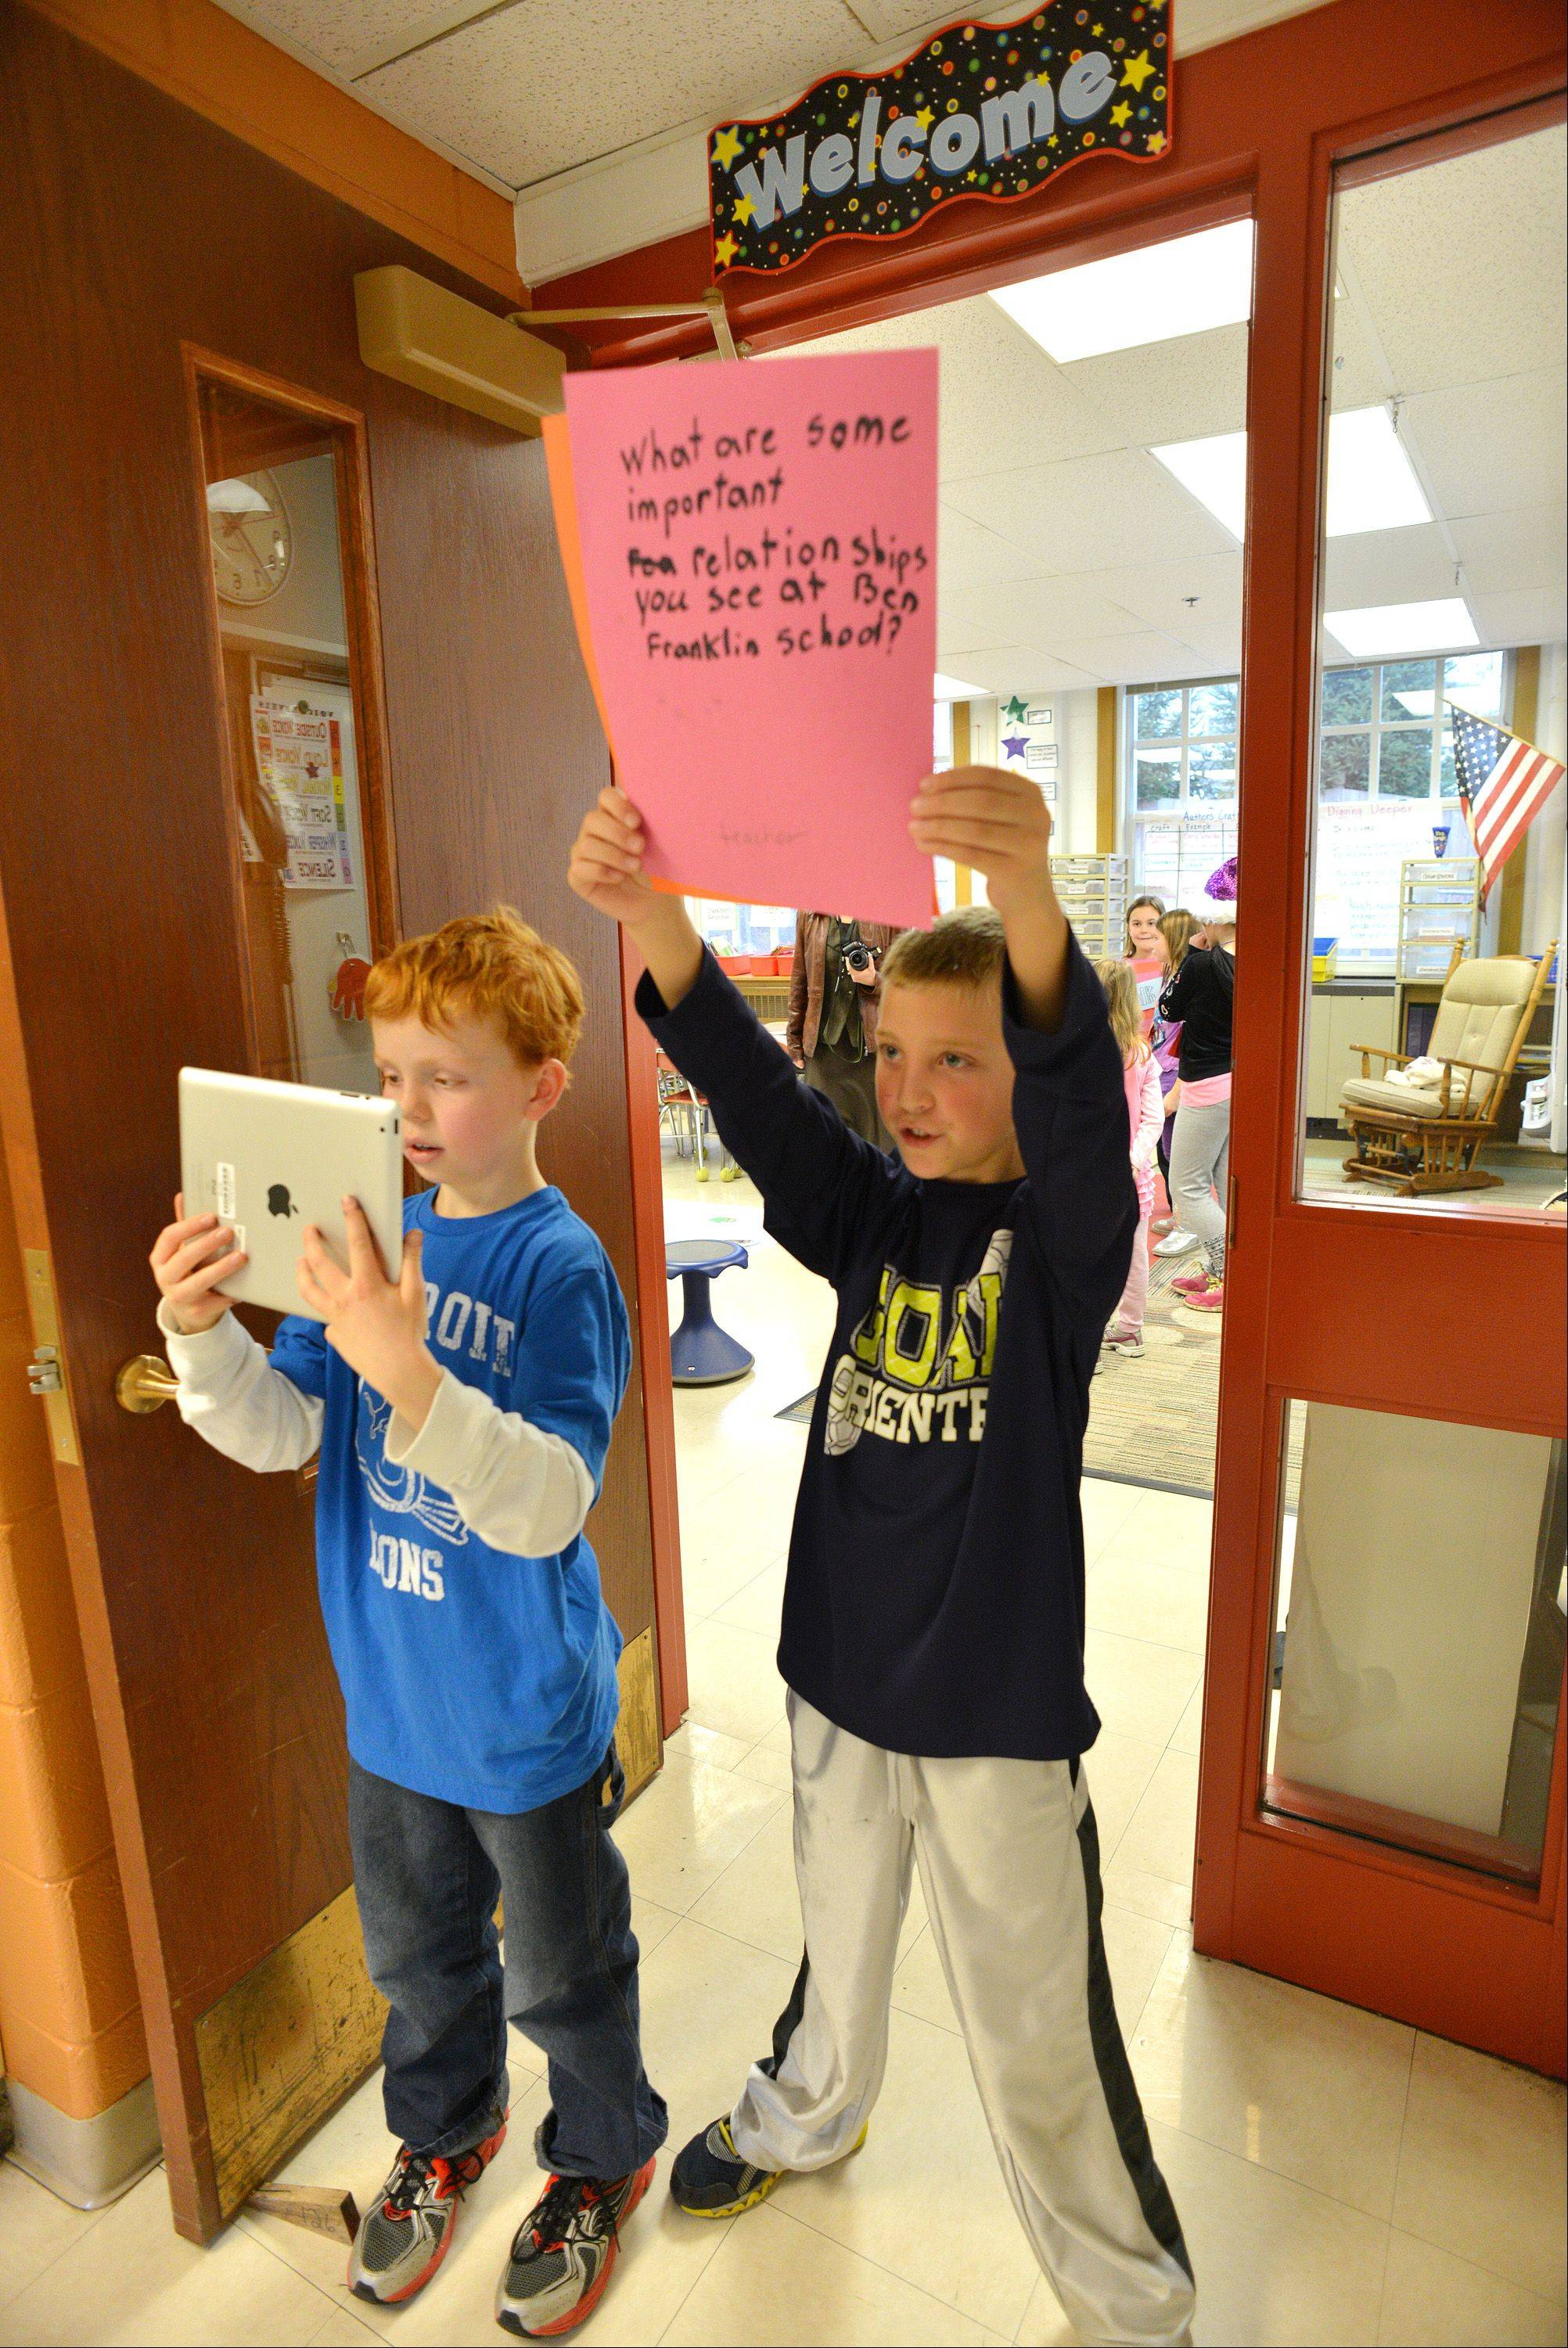 Some students at Benjamin Frankling Elementary School in Glen Ellyn are making videos asking people about their relationships. Nathan Hibbard, left, records a video on an iPad, while Andrew Novak holds cue cards for the actors. The school recently was honored for its innovative approaches to learning.